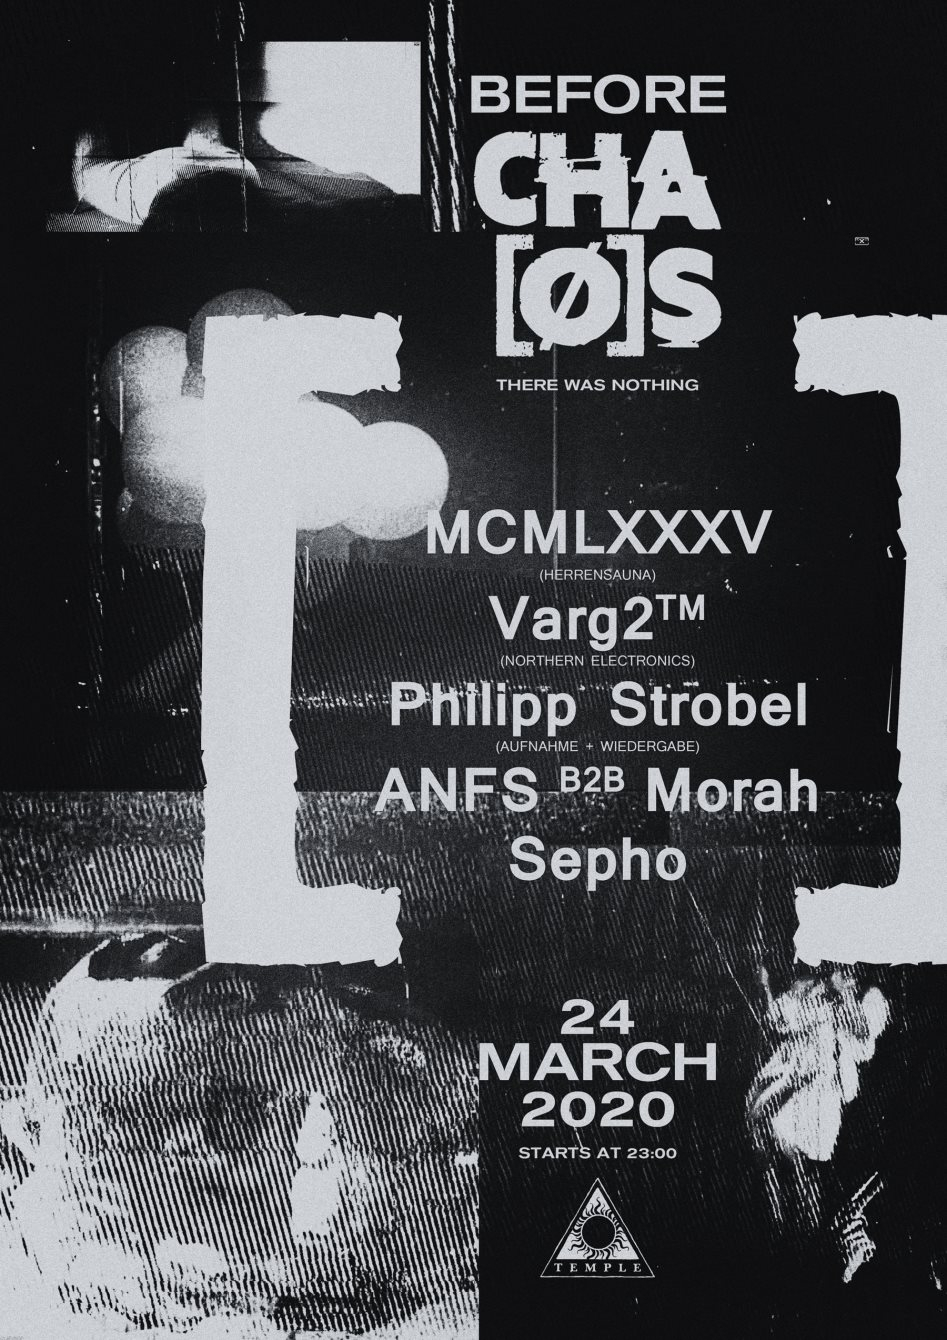 Before CHAØS - Flyer front